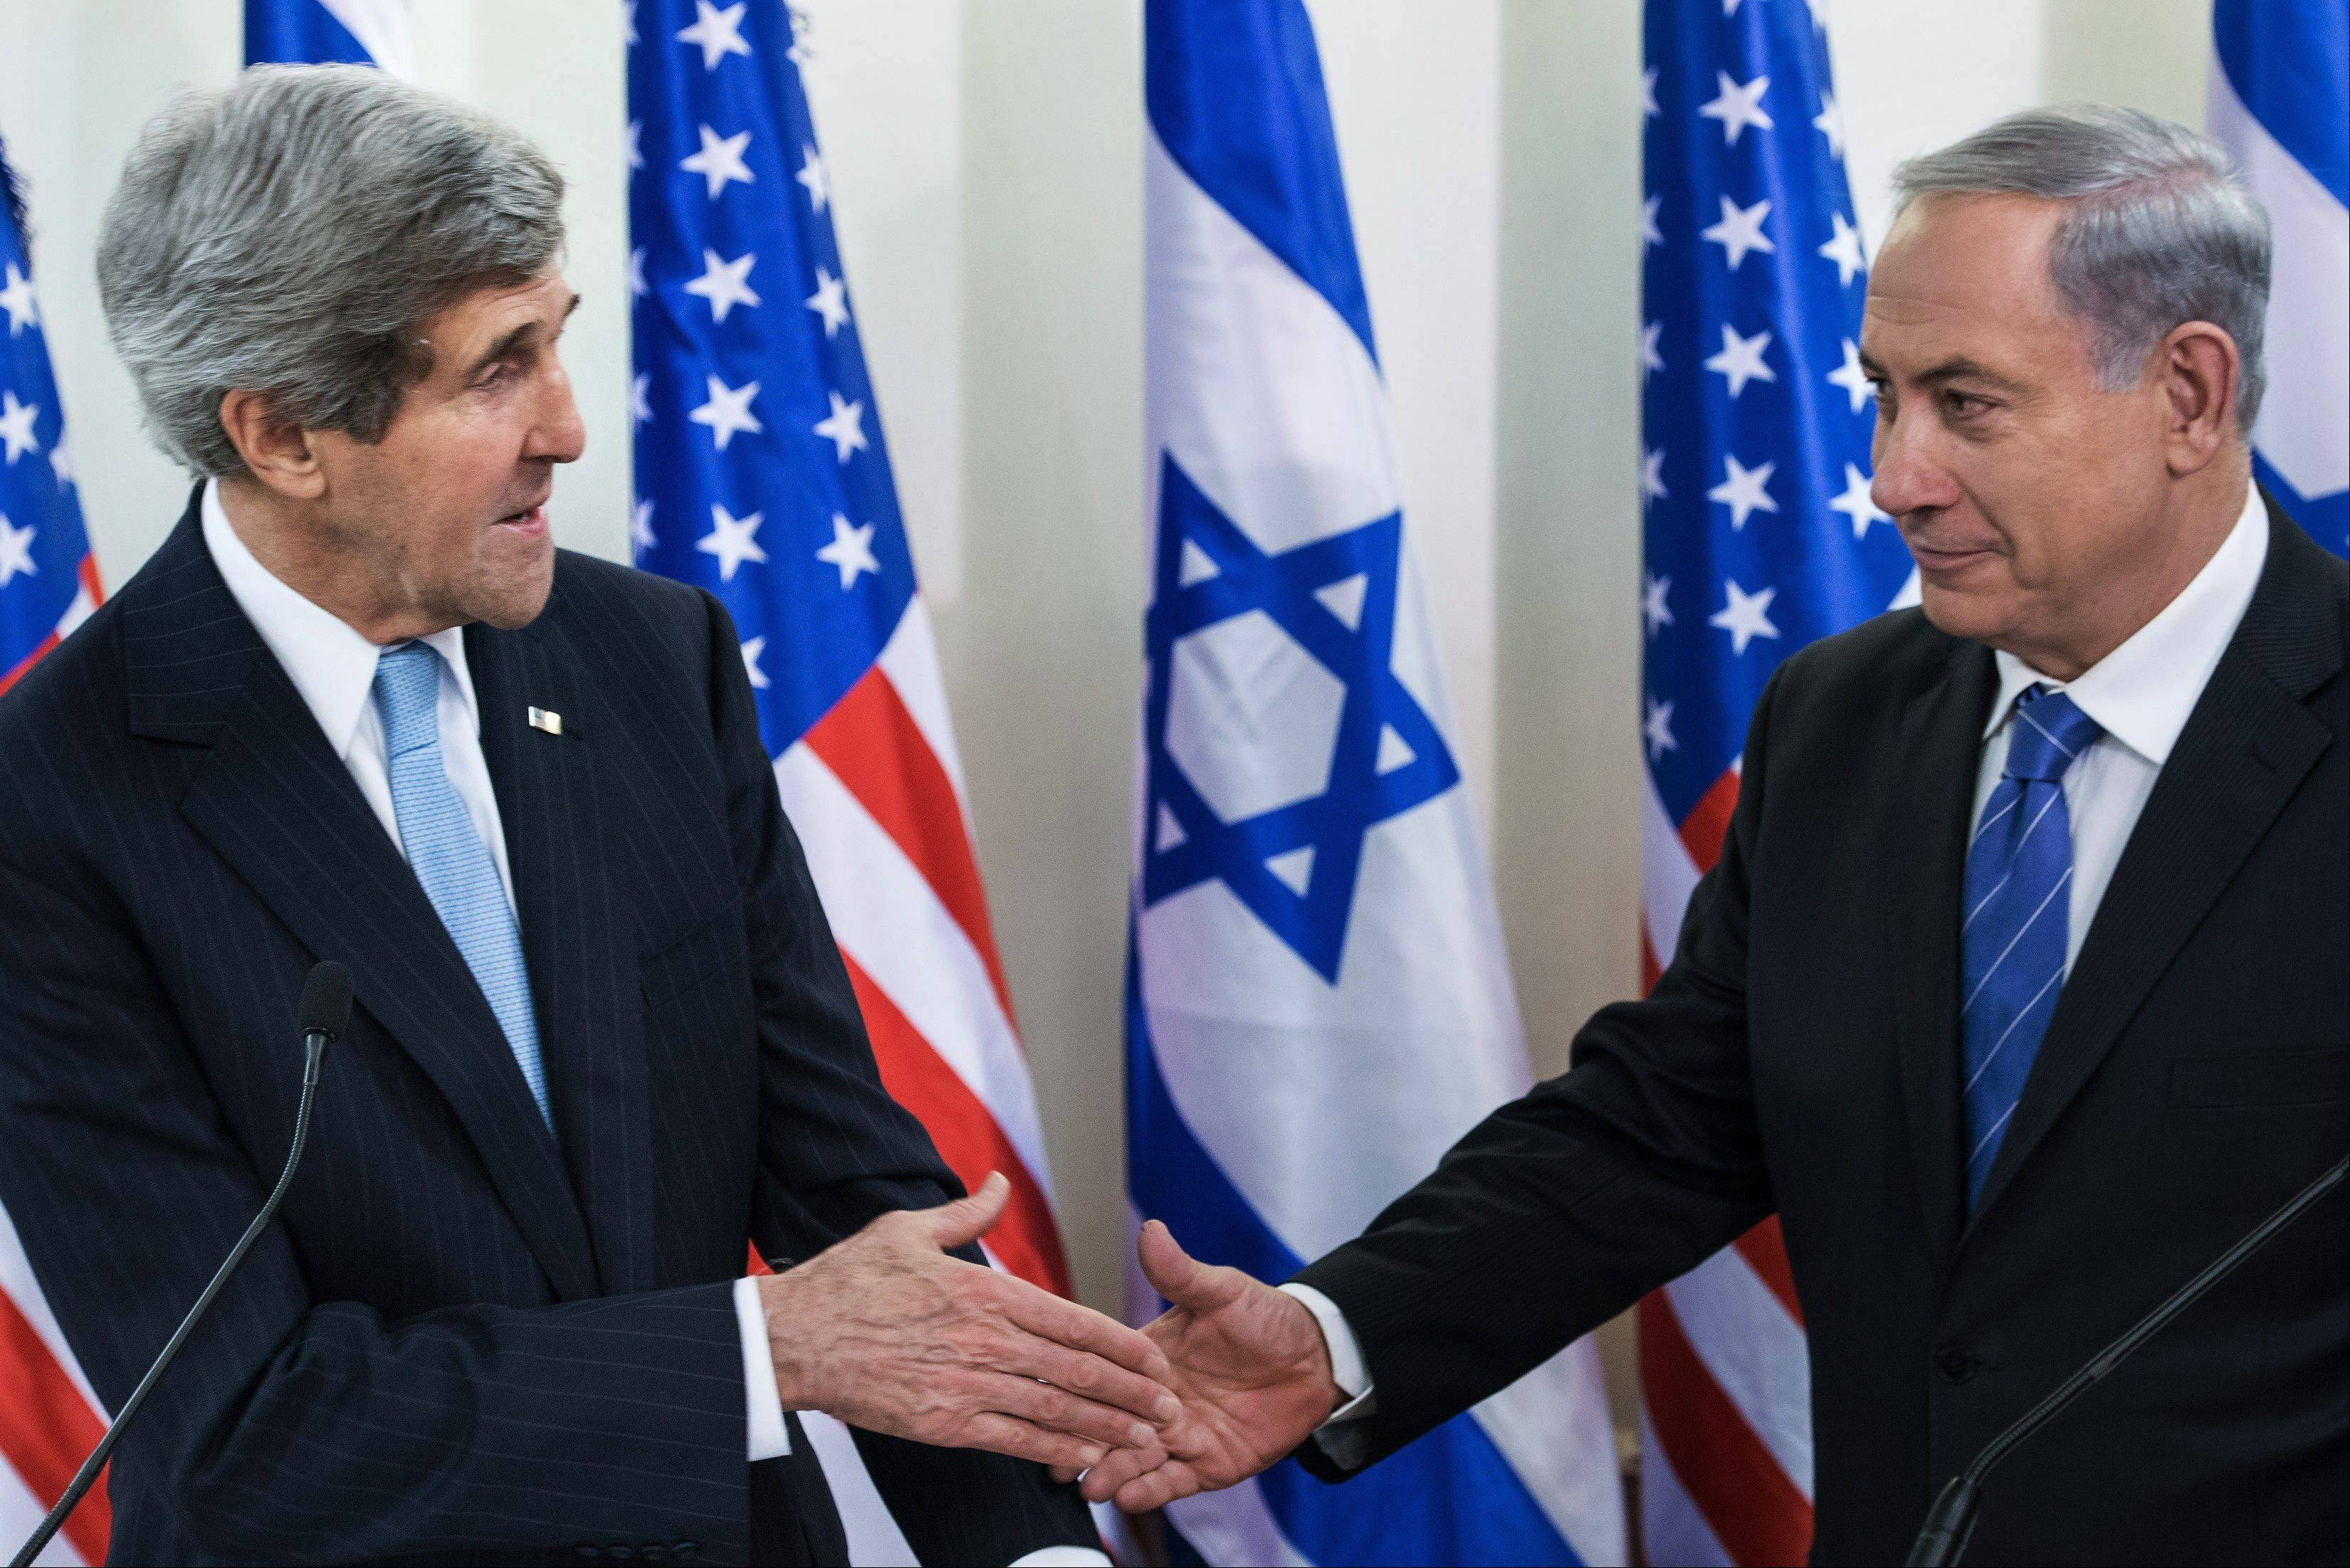 Secretary of State John Kerry, left, and Israeli Prime Minister Benjamin Netanyahu shake hands before a meeting at the prime minister�s office in Jerusalem Thursday. Kerry arrived in Israel to broker Mideast peace talks that are entering a difficult phase aimed at reaching a two-state solution between the Israelis and Palestinians.